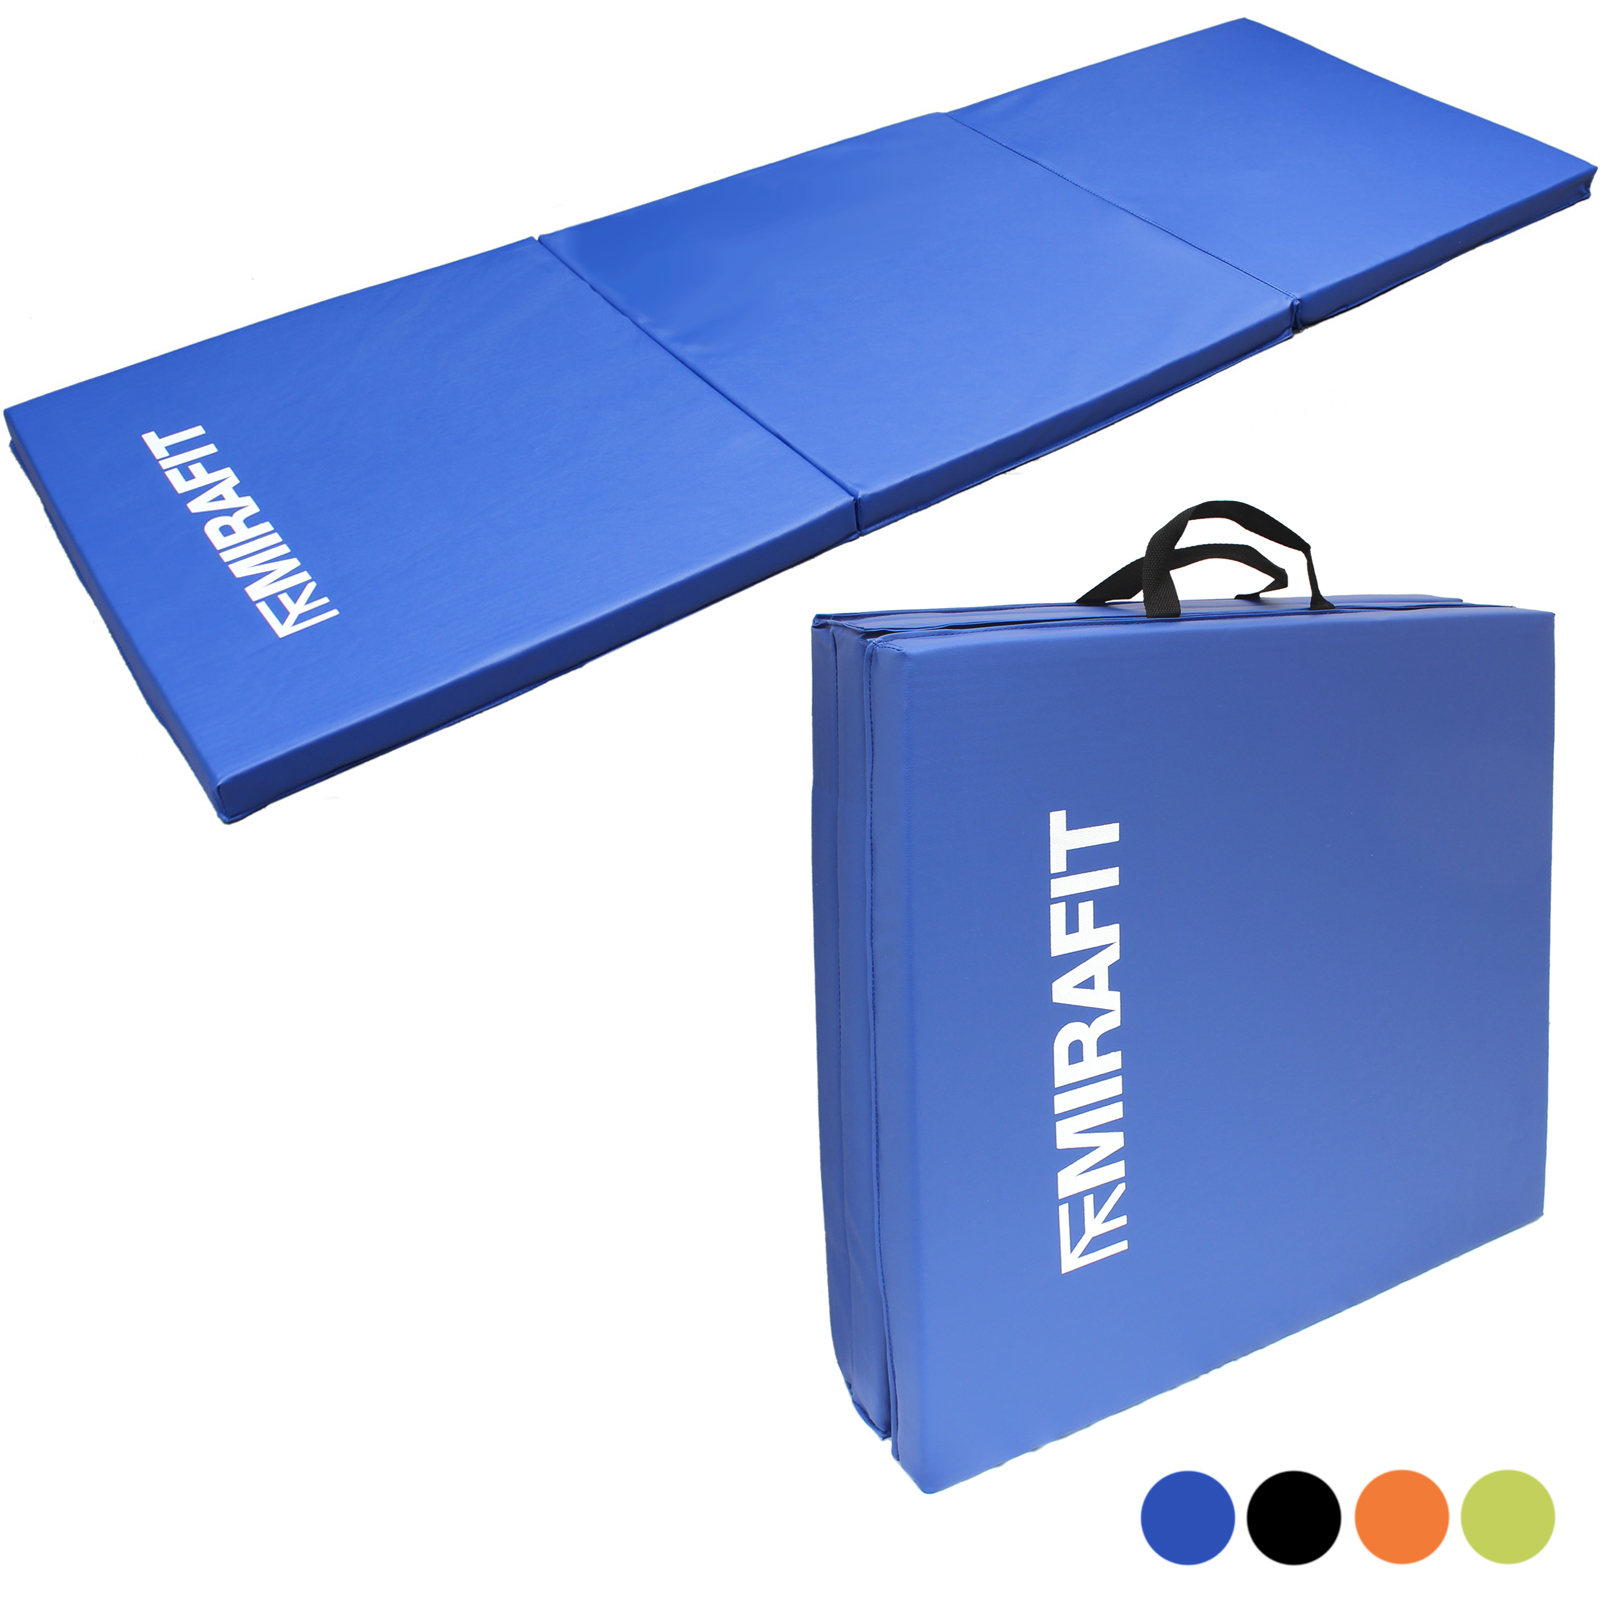 top sleep porta brands comfort inch master tri portable res memory or fold itm folding zinus mat foam mats